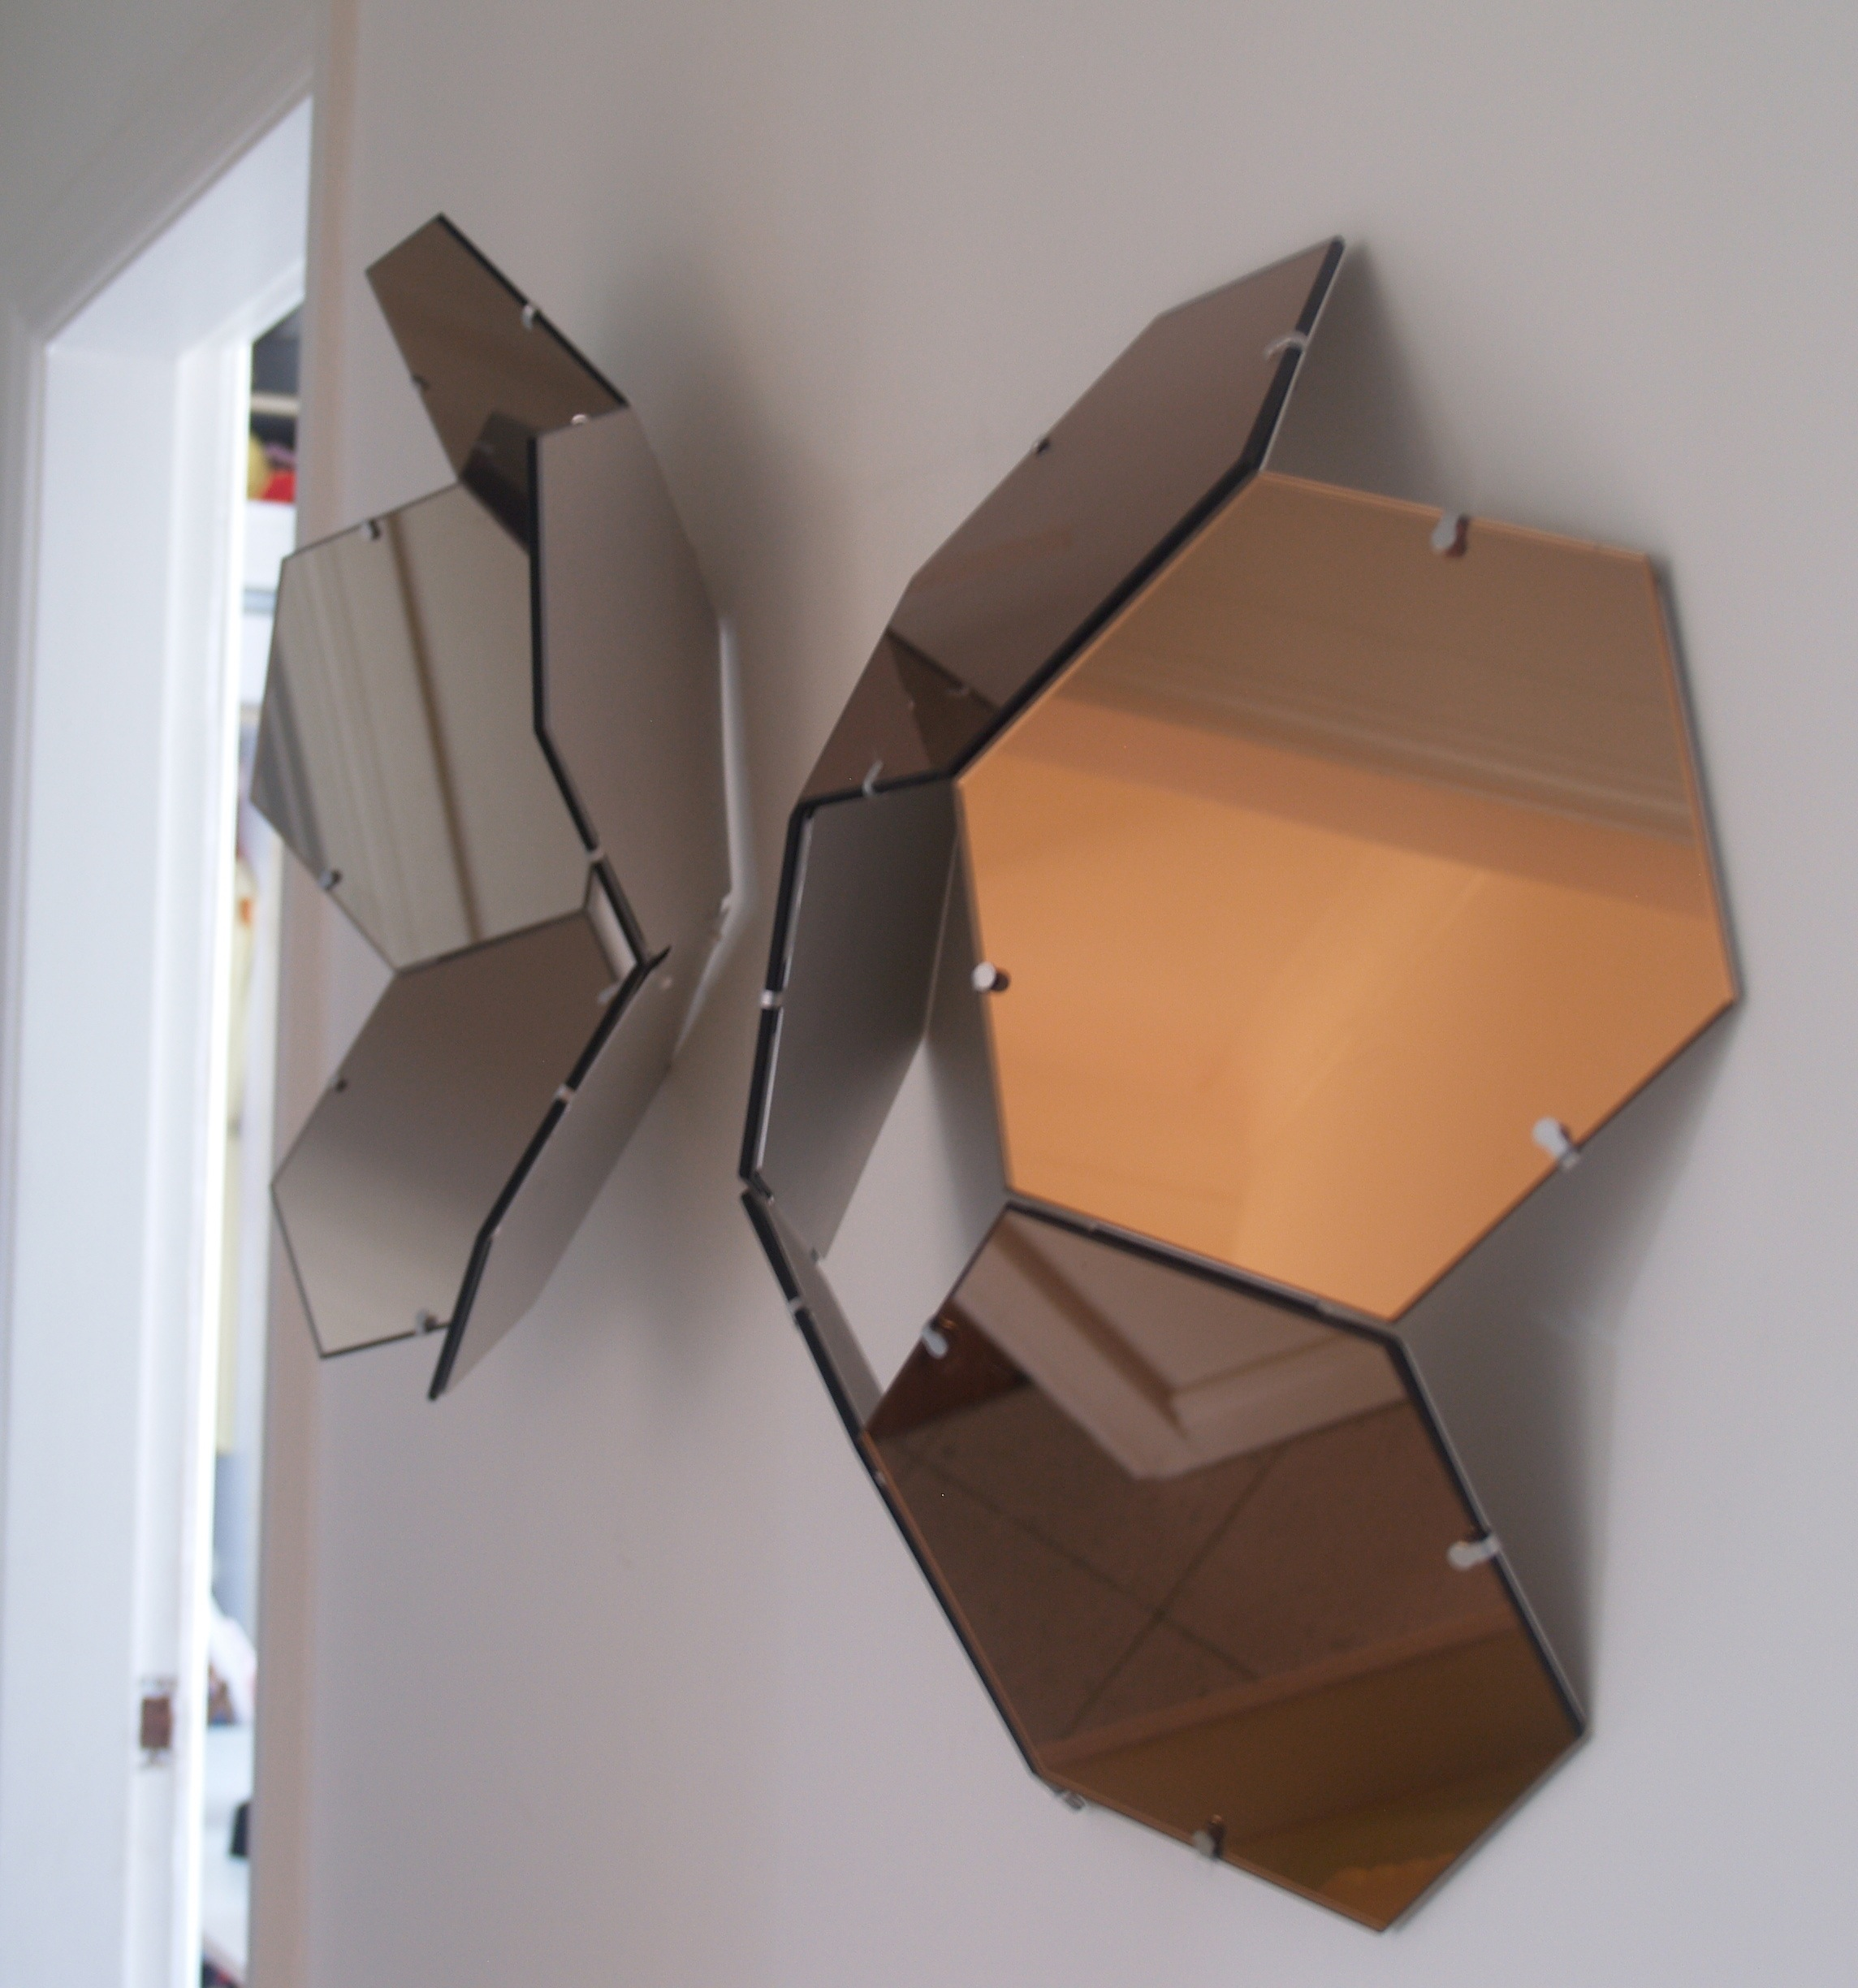 Ikea Honefoss Mirror Designs